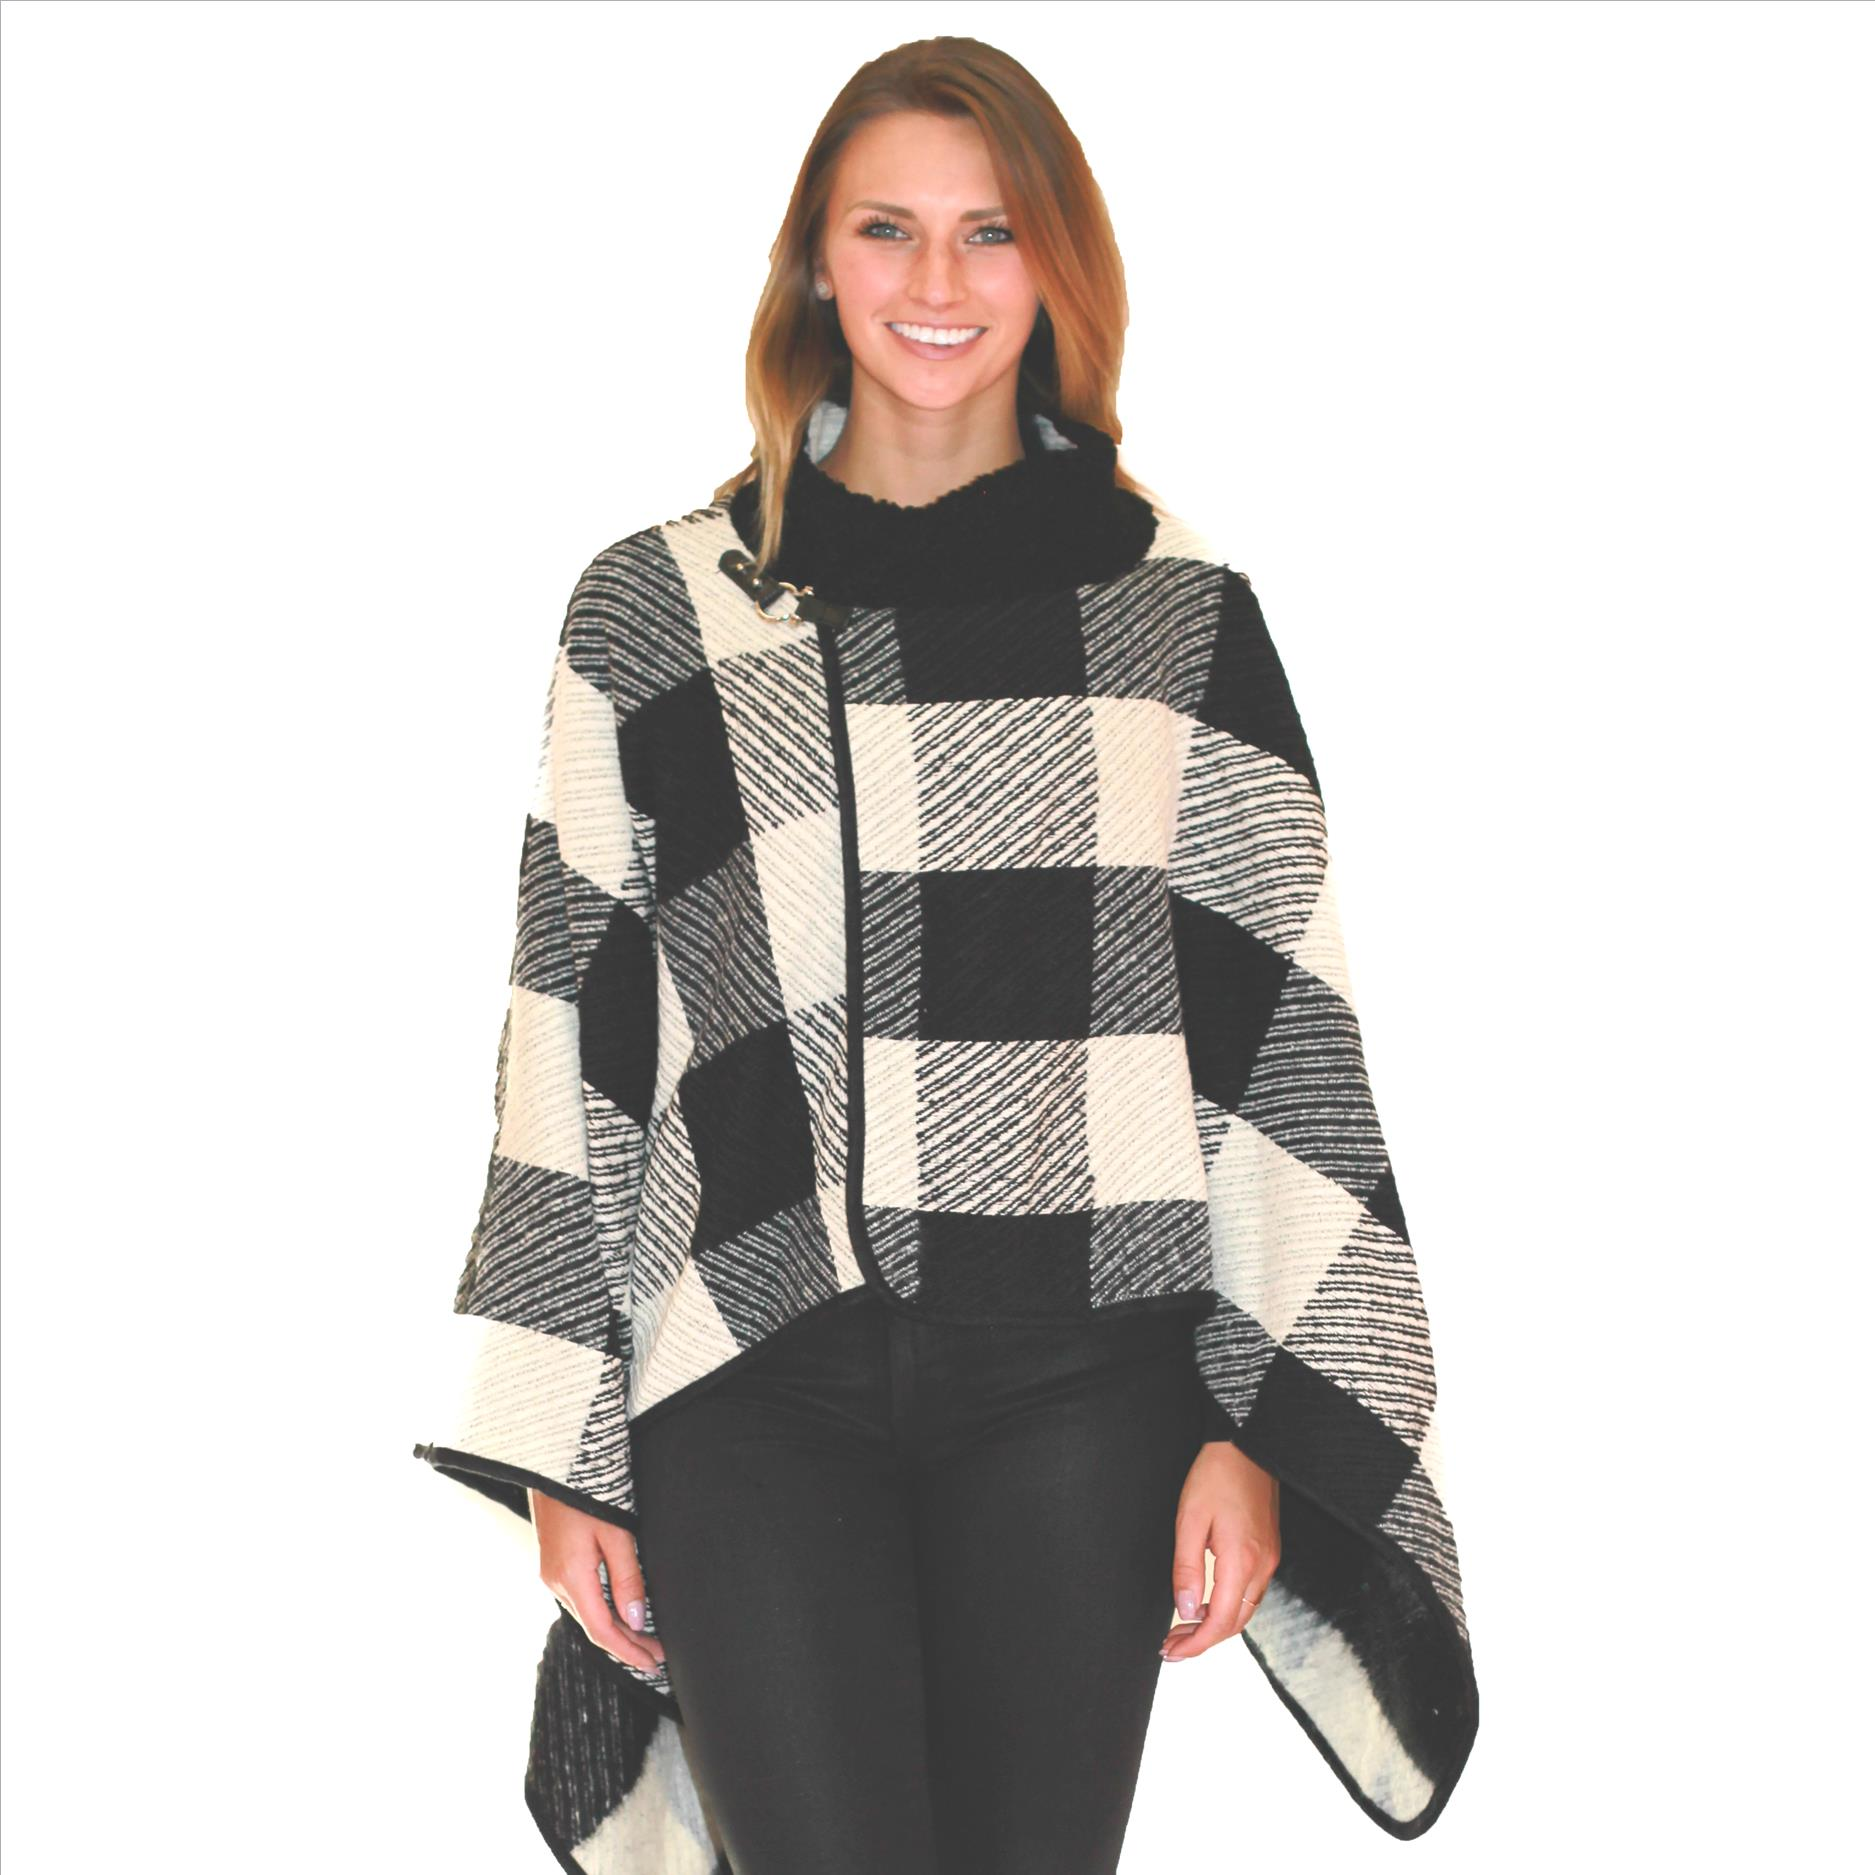 6 Pack Buffalo Plaid Wraps with Fur Collar - Black / White